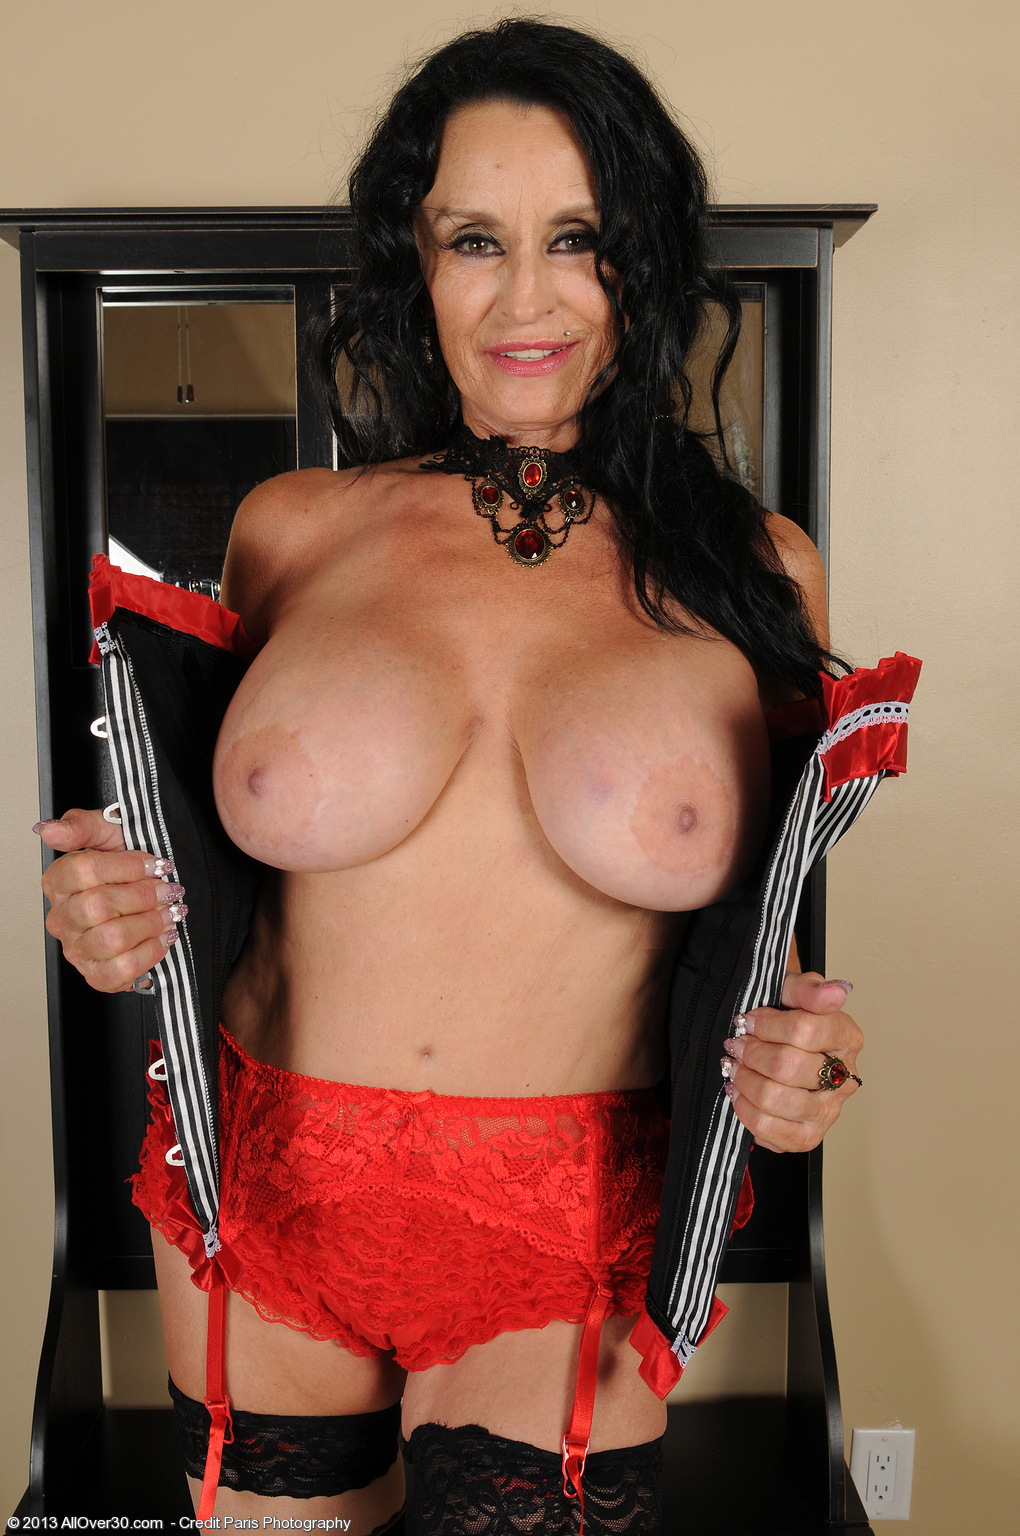 Lovely all over 30 red lingerie granny